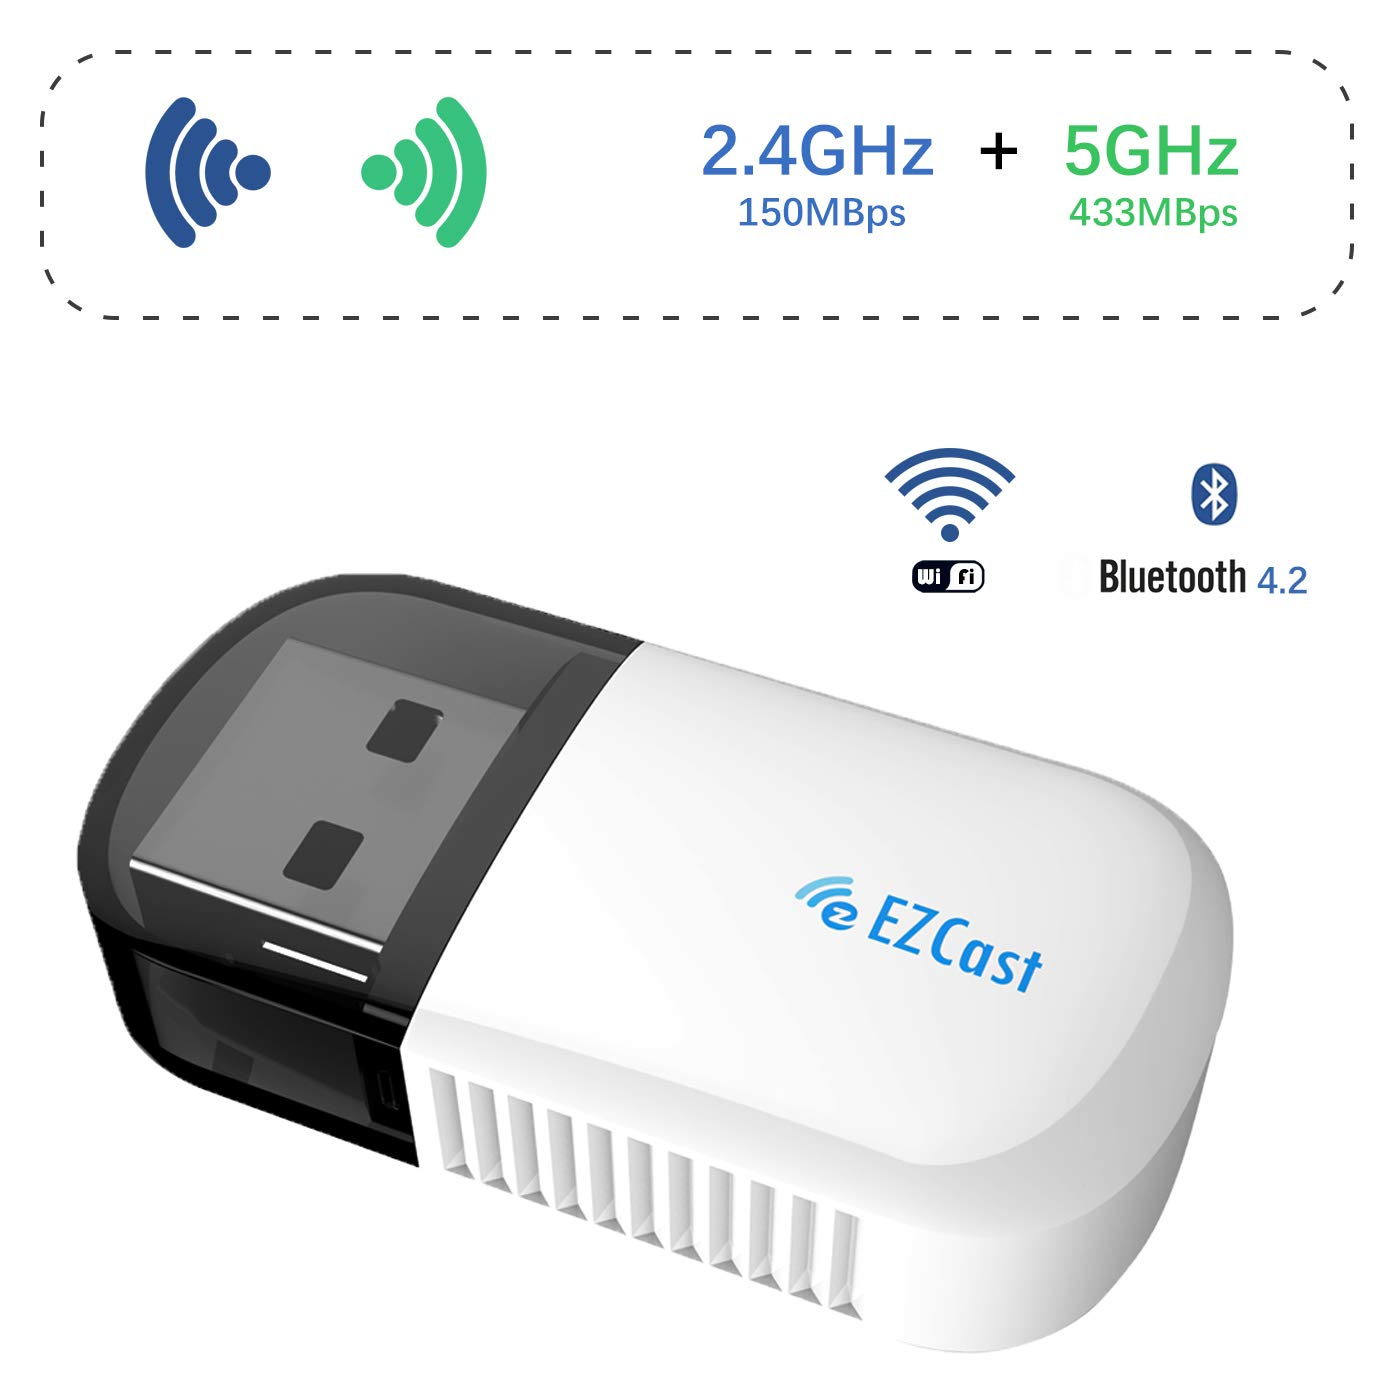 EZcast USB WiFi Adapter Mini Dual Band 5G/2 4GHz Wireless Network LAN Card  with Bluetooth 4 2 2 in 1 Nano USB Adapter Compatible Windows XP/7/8/10/Mac